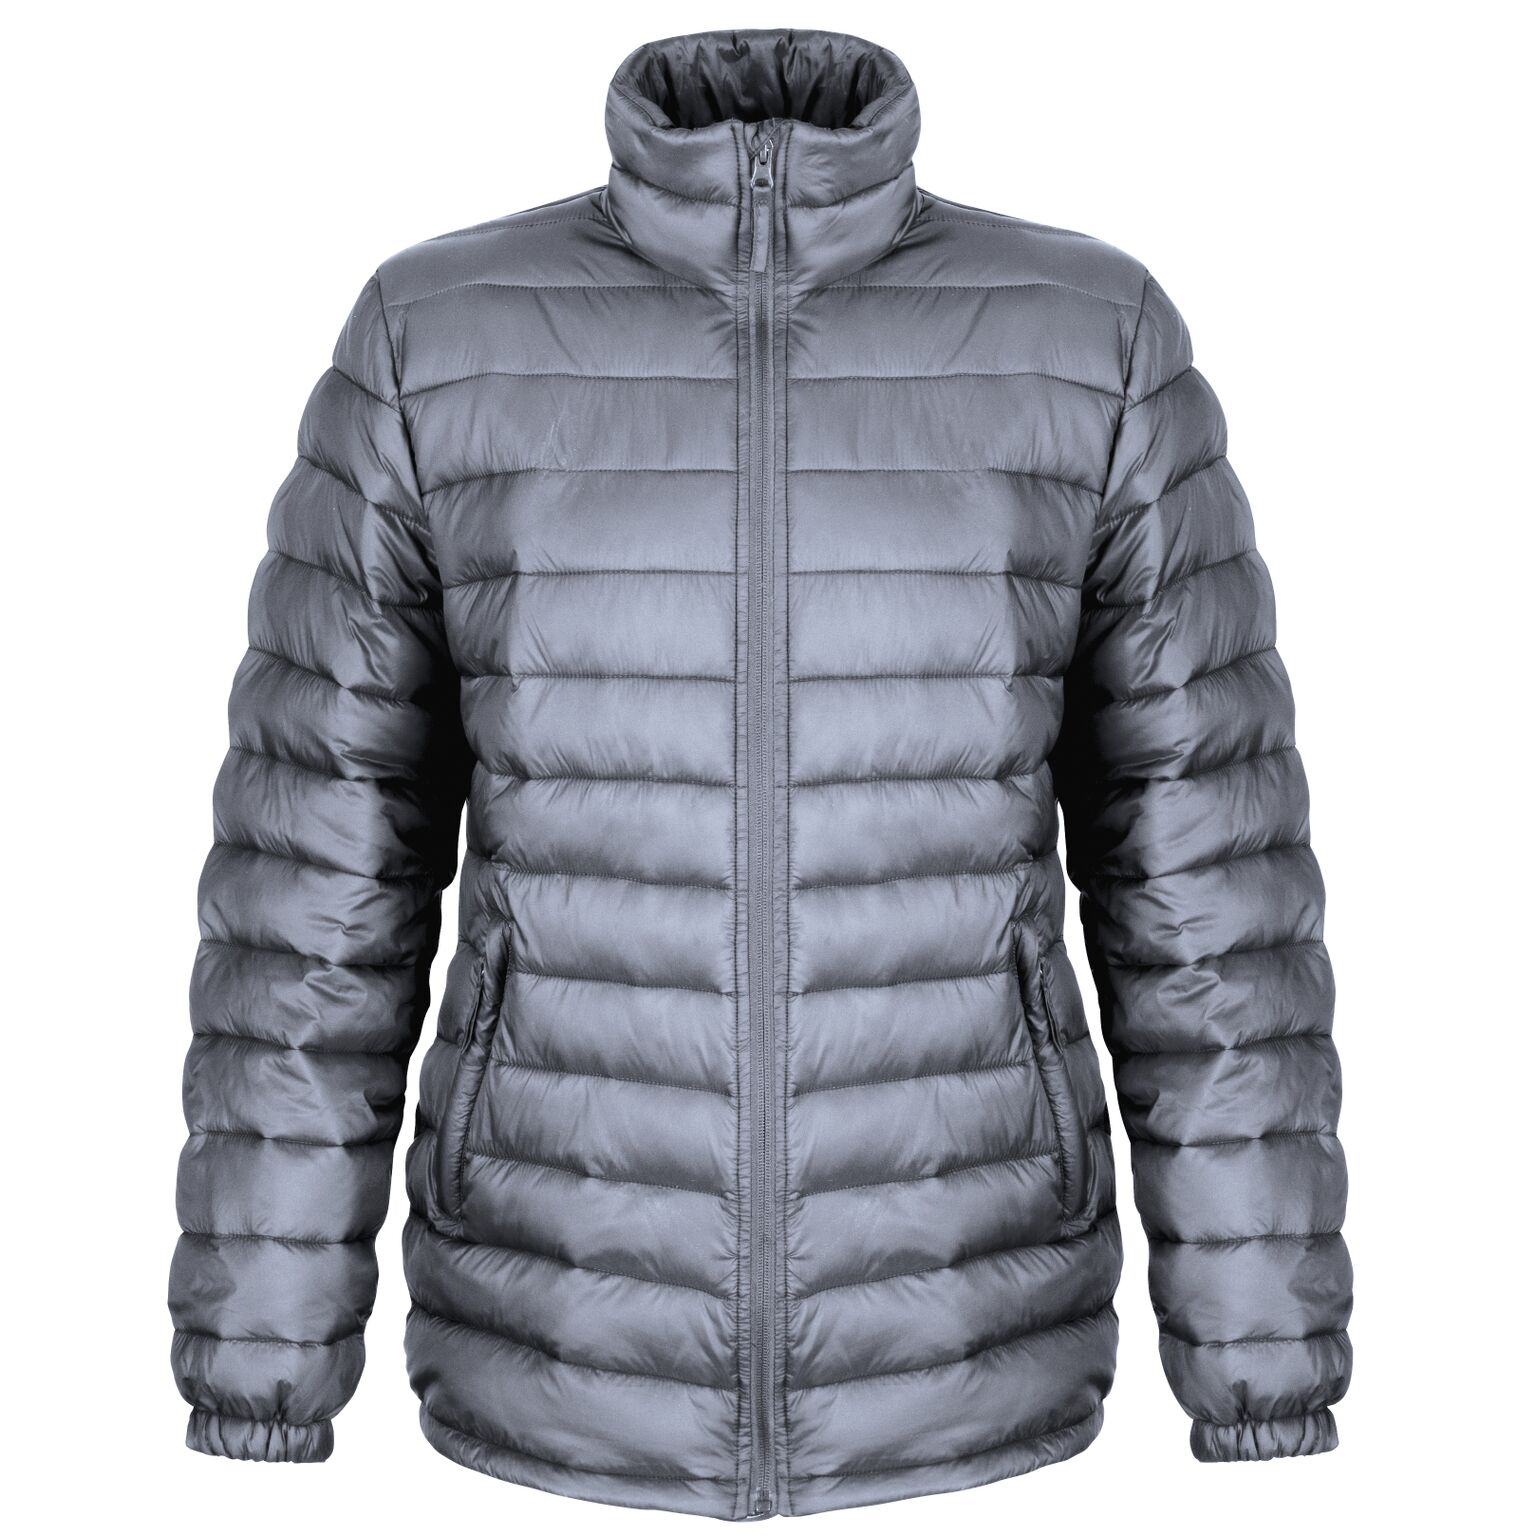 Padded jacket - £35.95 including 1 logo embroideryAvailable in Unisex & Lady FitAvailable in Black, Navy, Red, Seal Grey